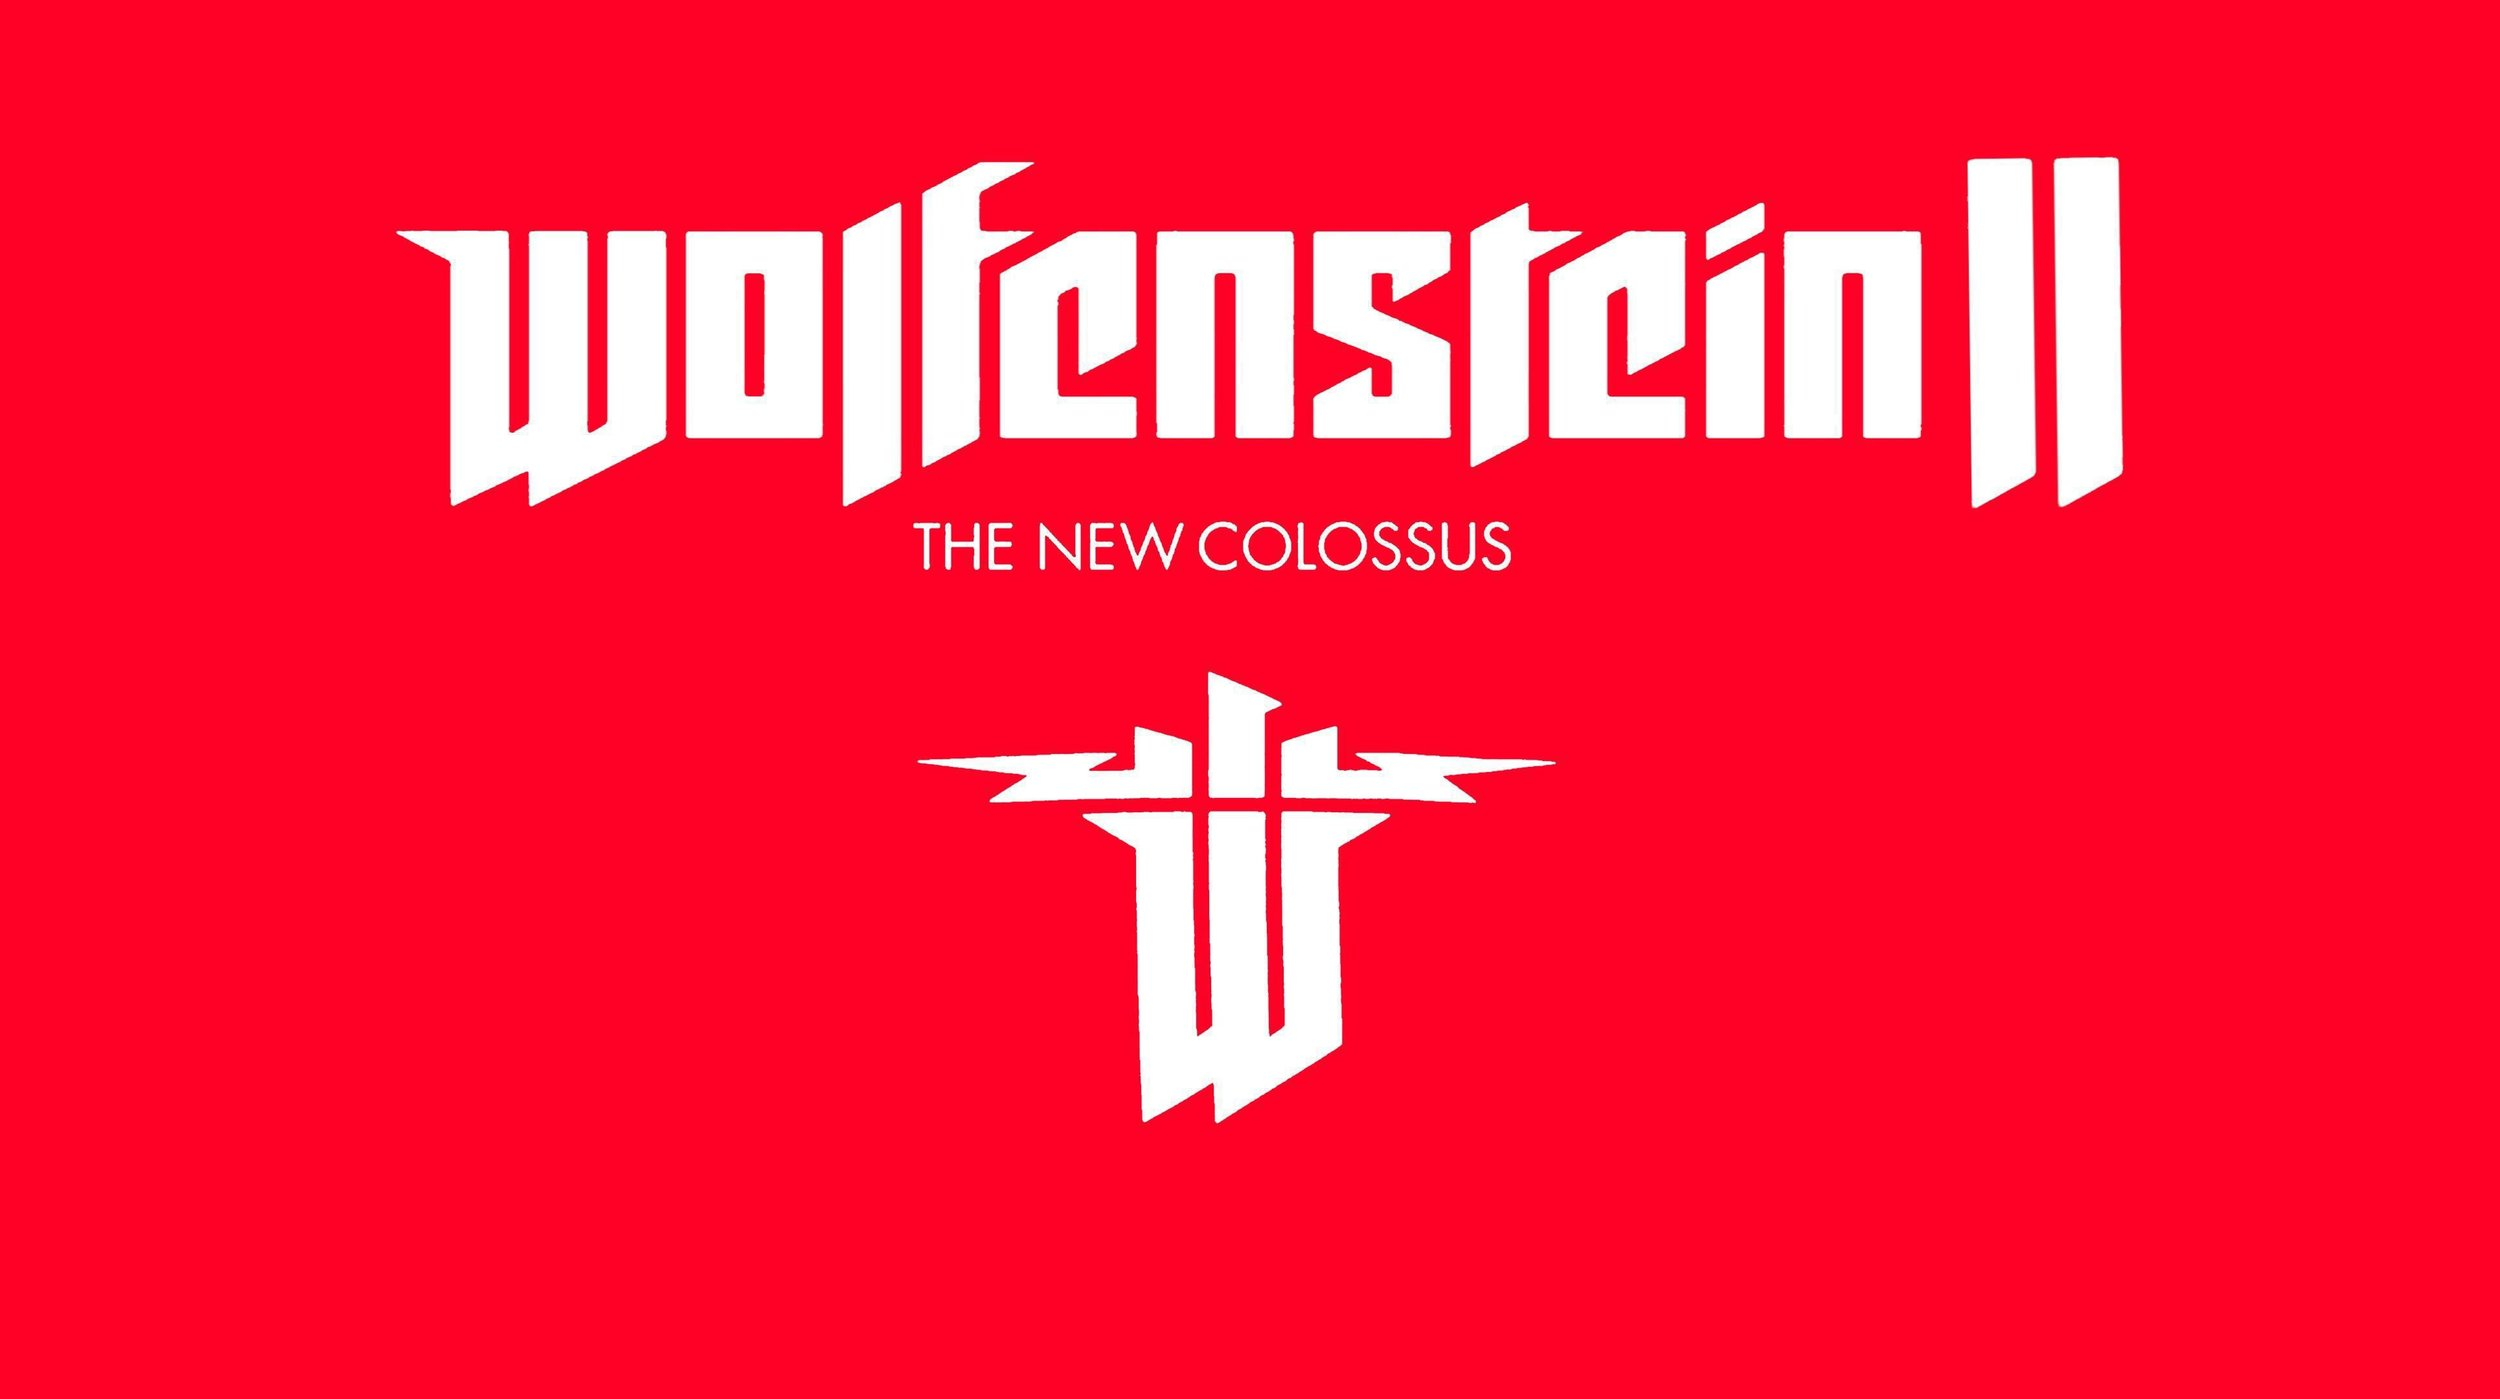 Wolfenstein-2-The-New-Colossus-Images.jpg